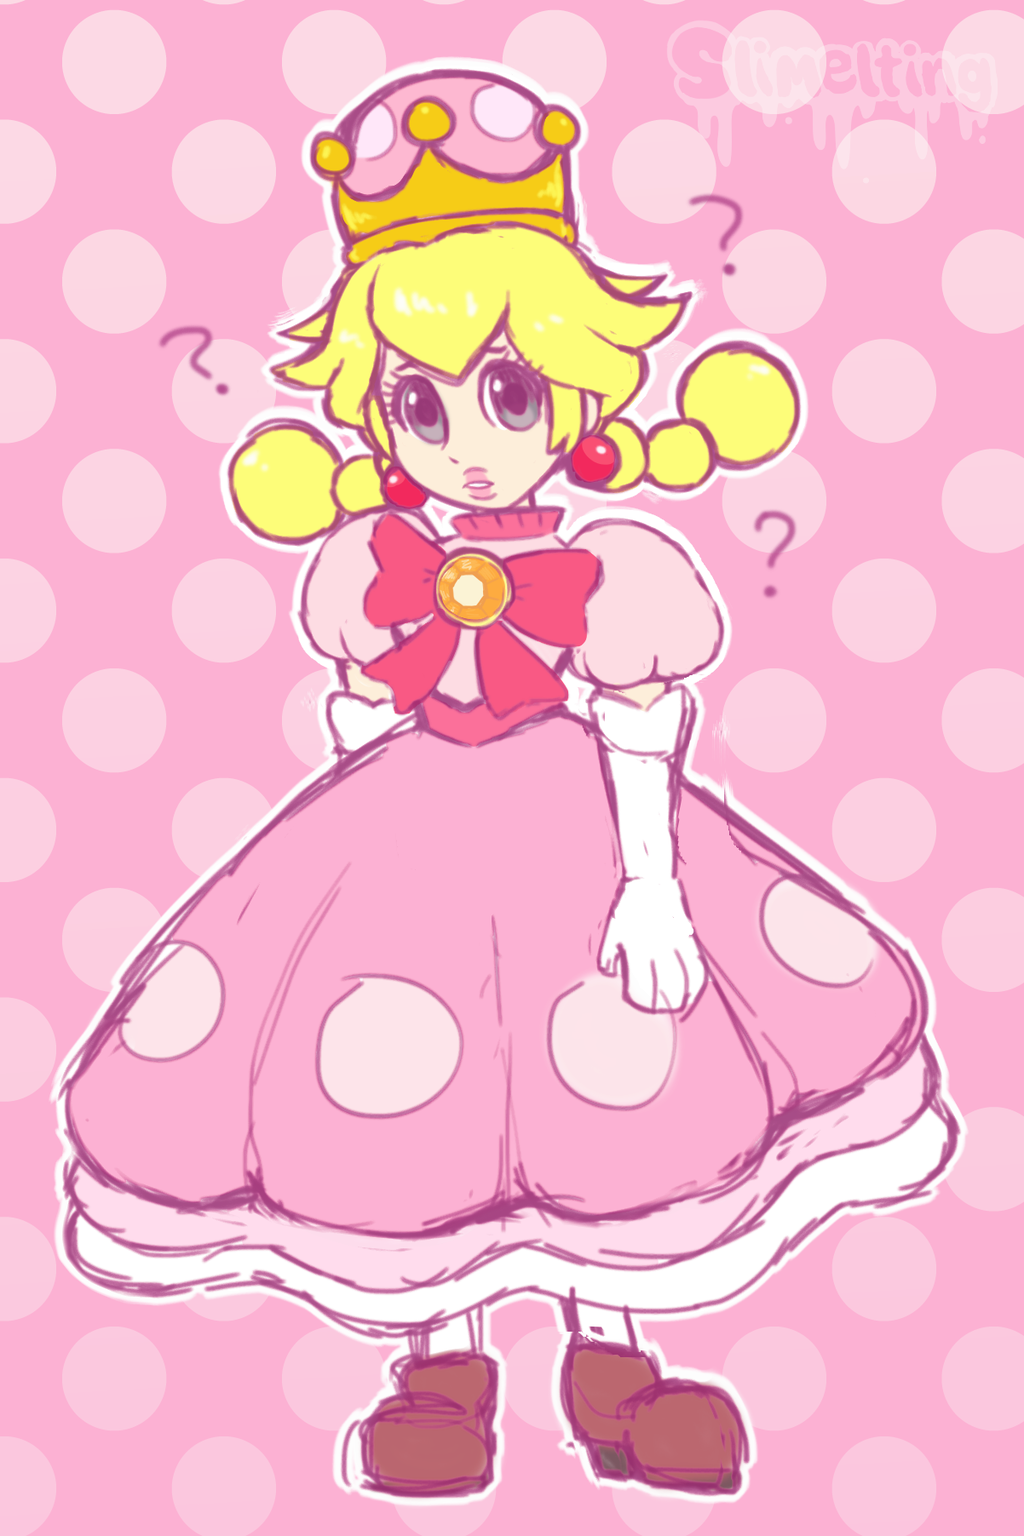 Most recent image: Peachette Sketch